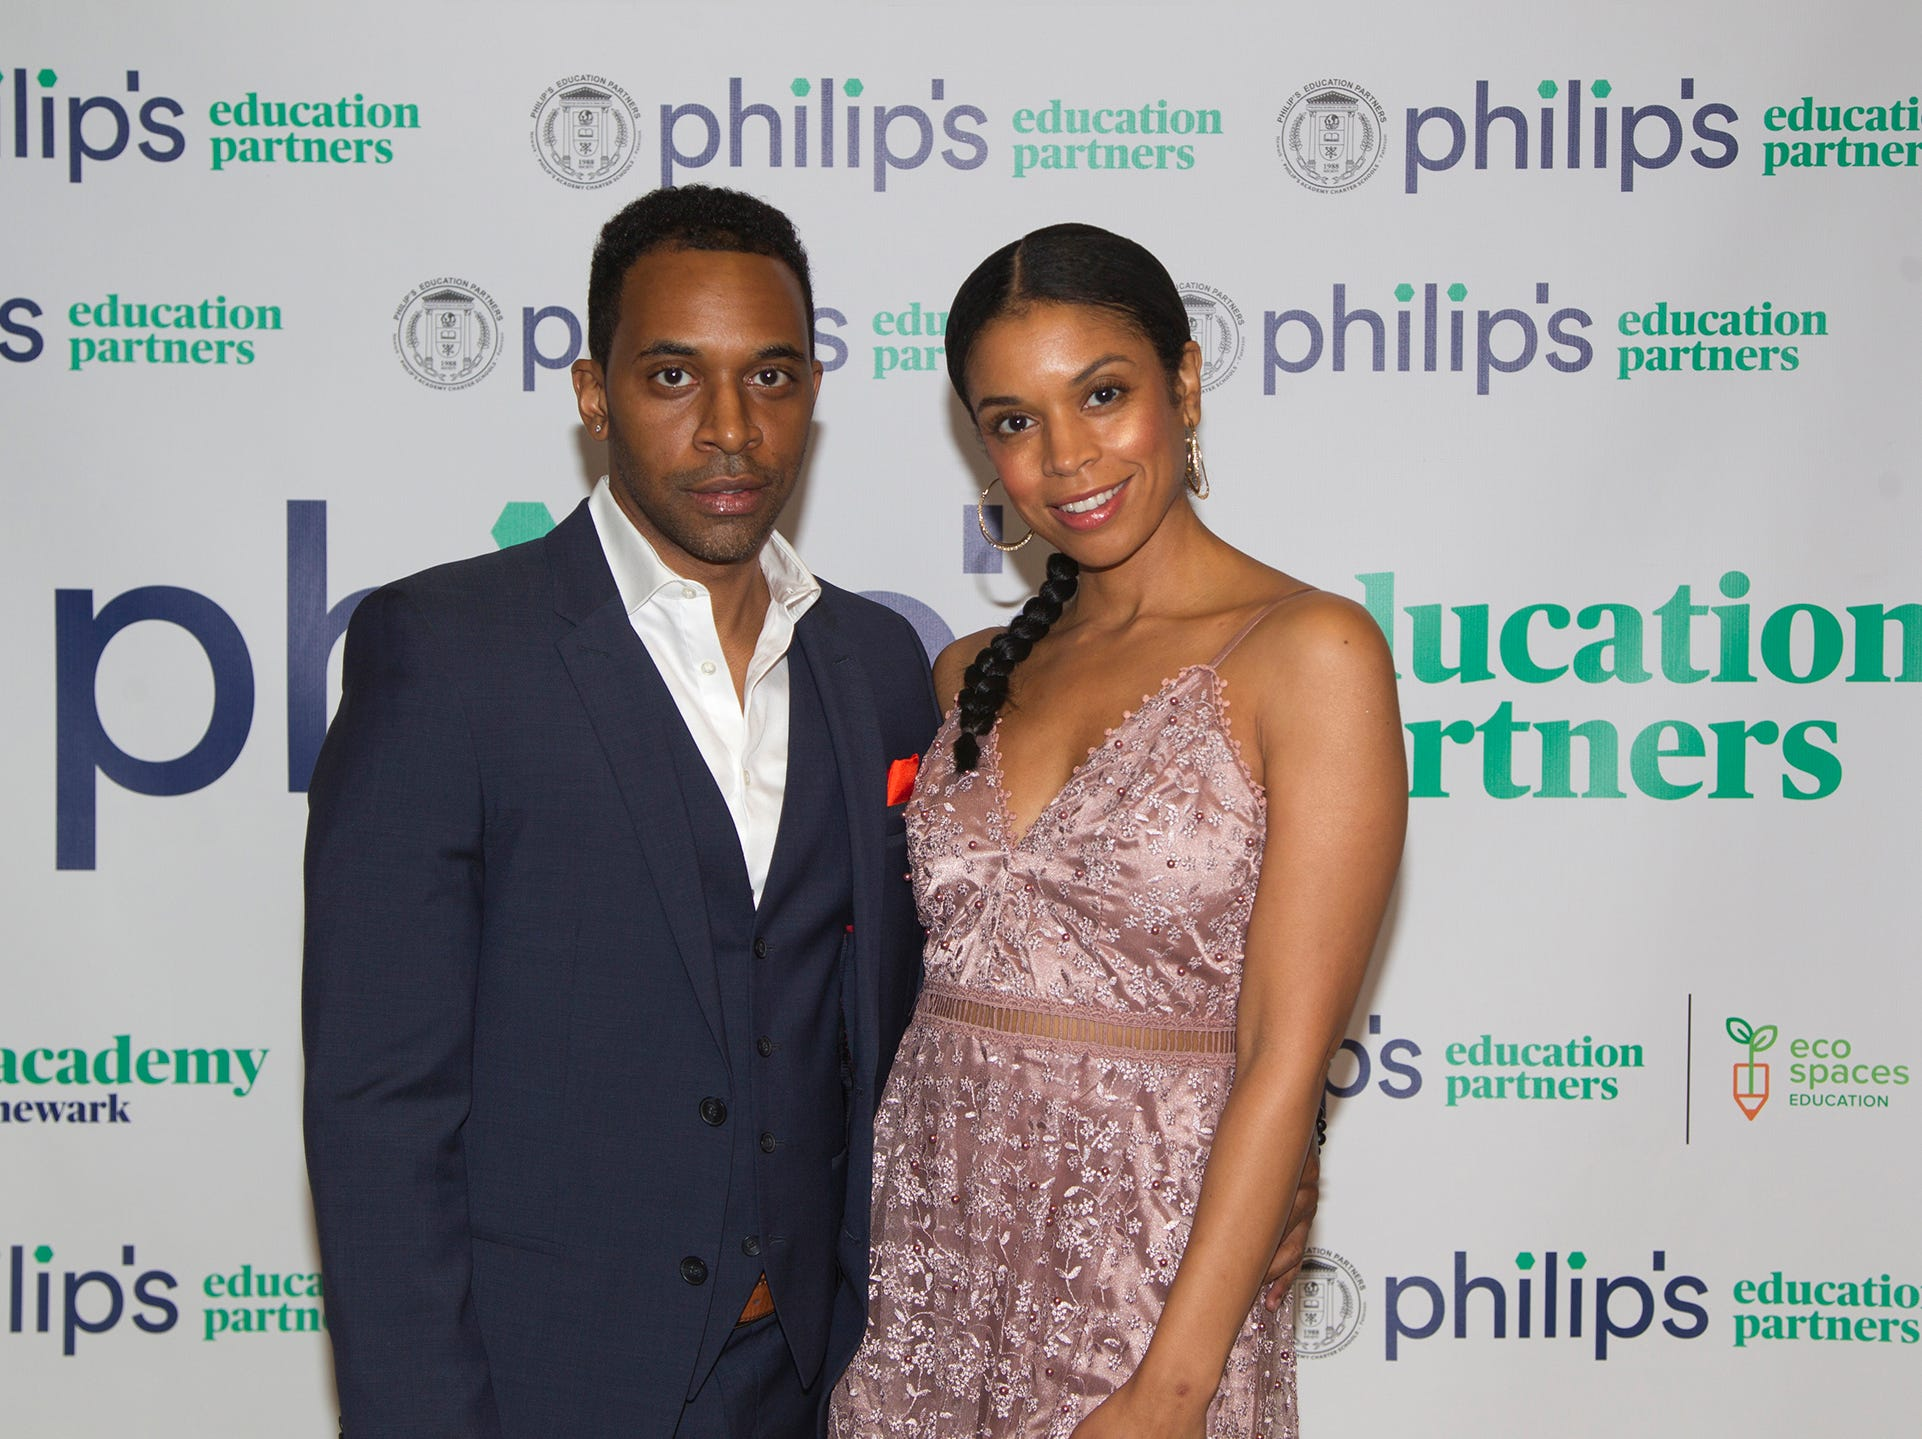 Jaime Lincoln Smith and Susan Kelechi Watson. Philip's Education Partners host The Dream Maker 30th anniversary gala at The Mezzanine in Newark 3/29/2019.